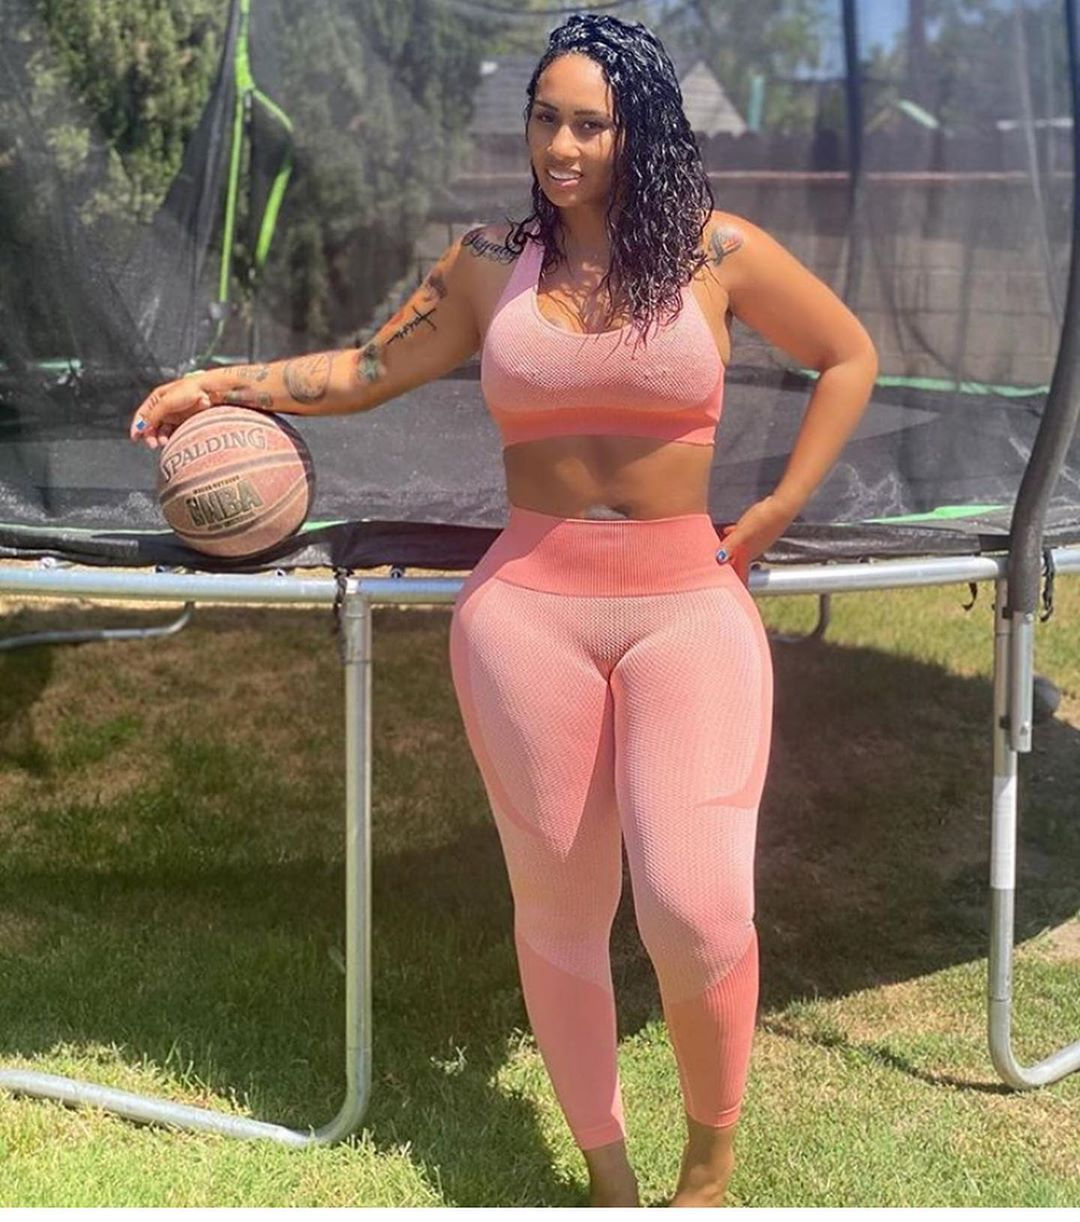 412 Likes 16 Comments Eyecandy Influencer 250k Jawdropping Candy On Instagram Good Morning From This Side In 2020 Plus Size Fashion Fashion Chicks